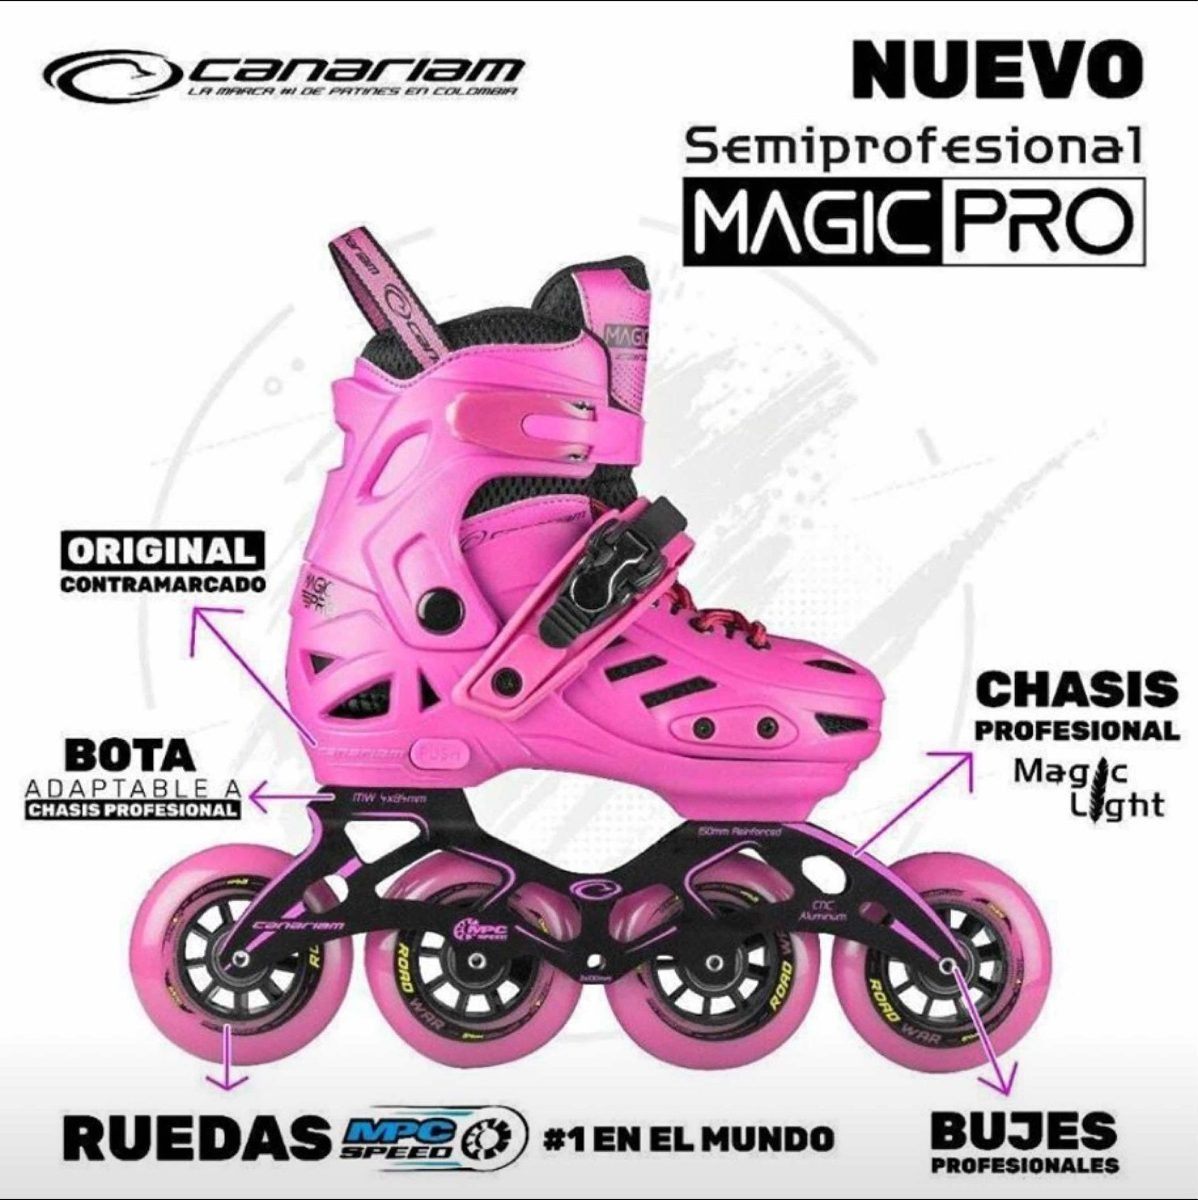 Patines Semiprofessionales Black Magic Pro Canariam Nuevos!!